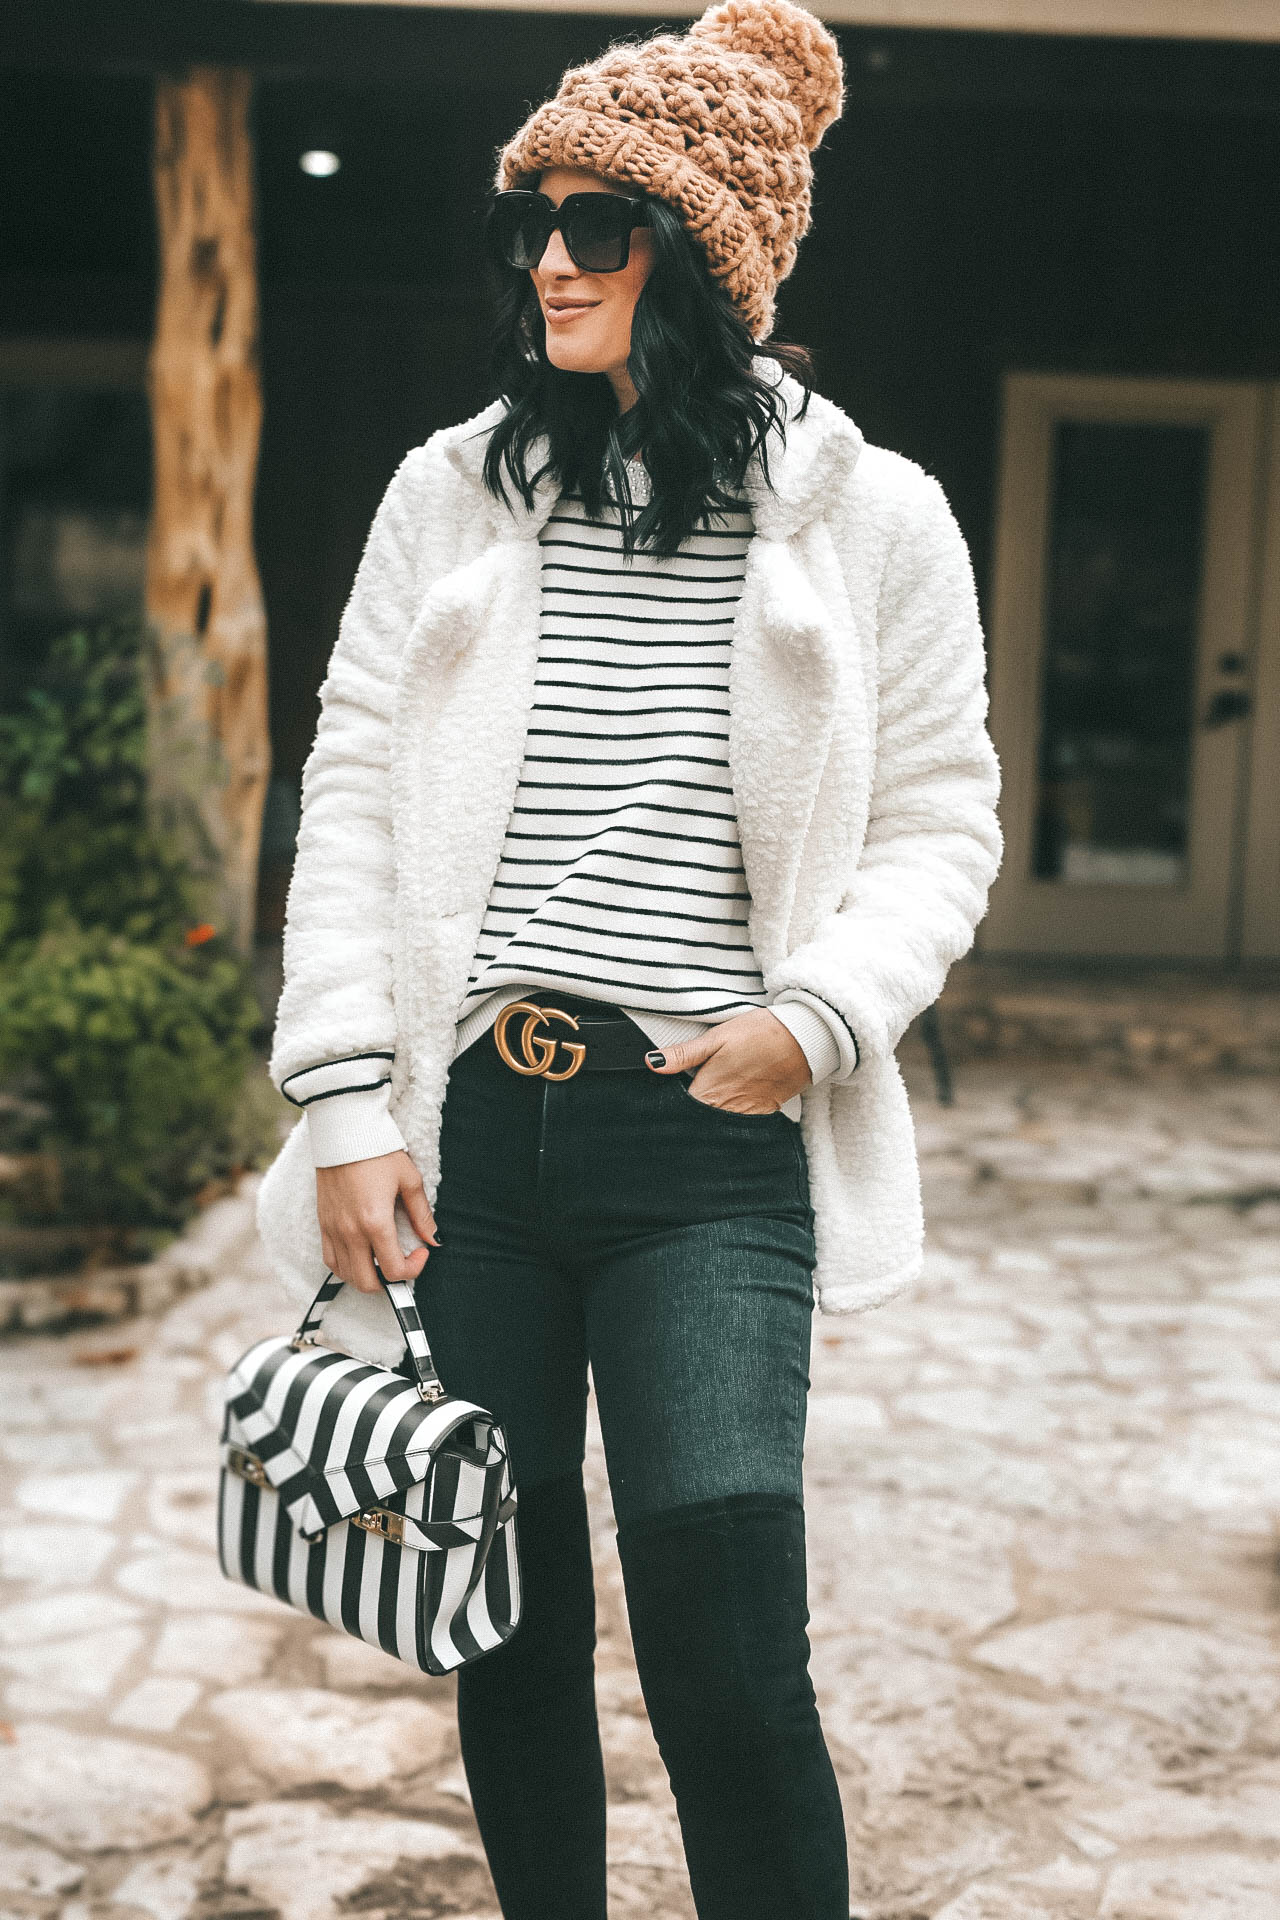 {How to Style a Striped Sweater}